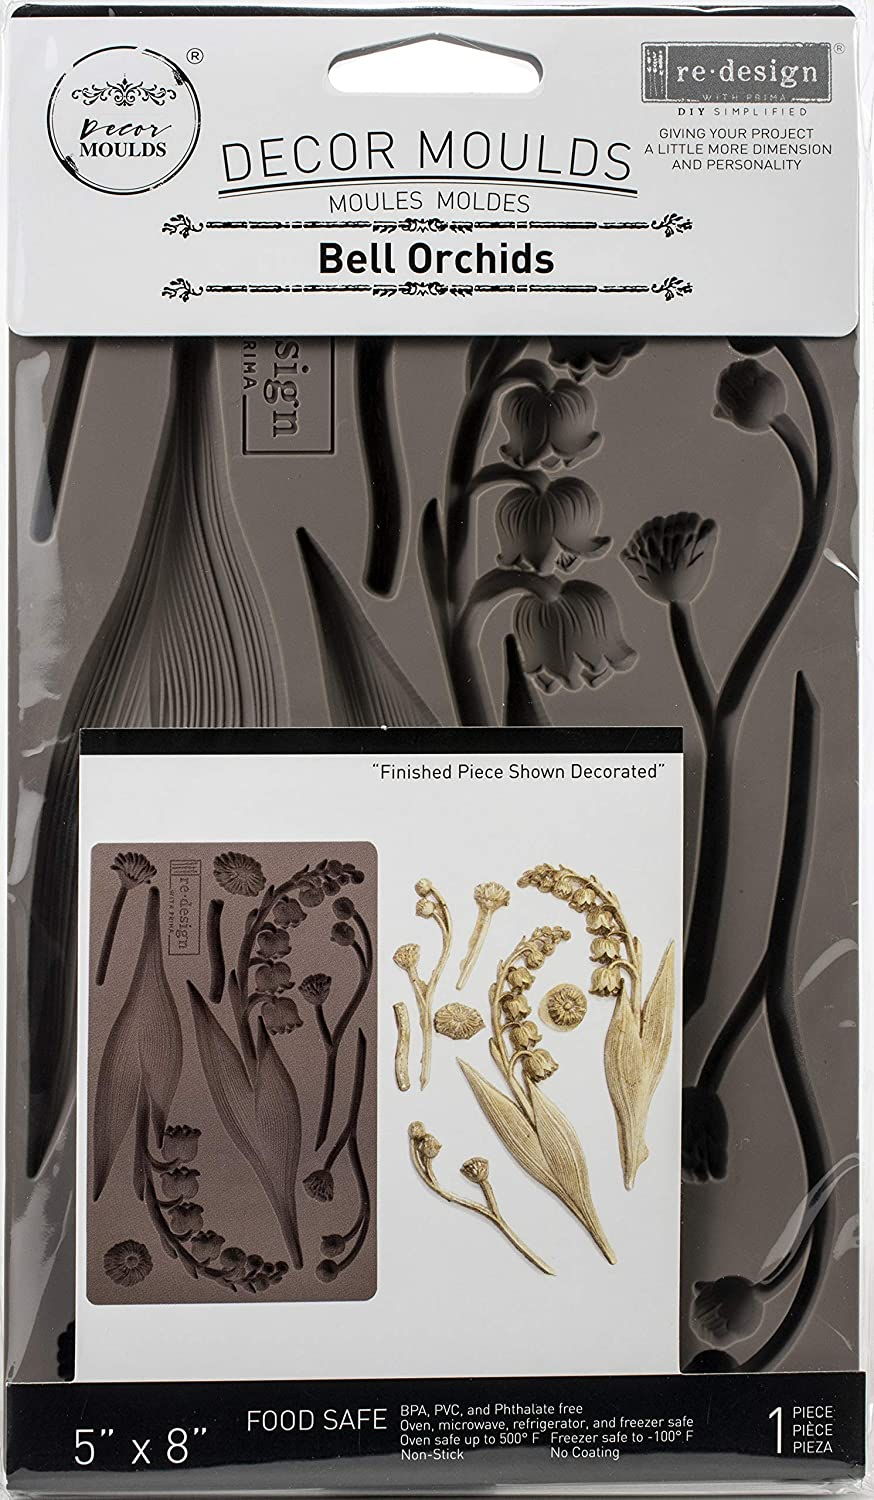 PRIMA MARKETING INC Redesign Mould 5X8 ORCHI, Bell Orchids